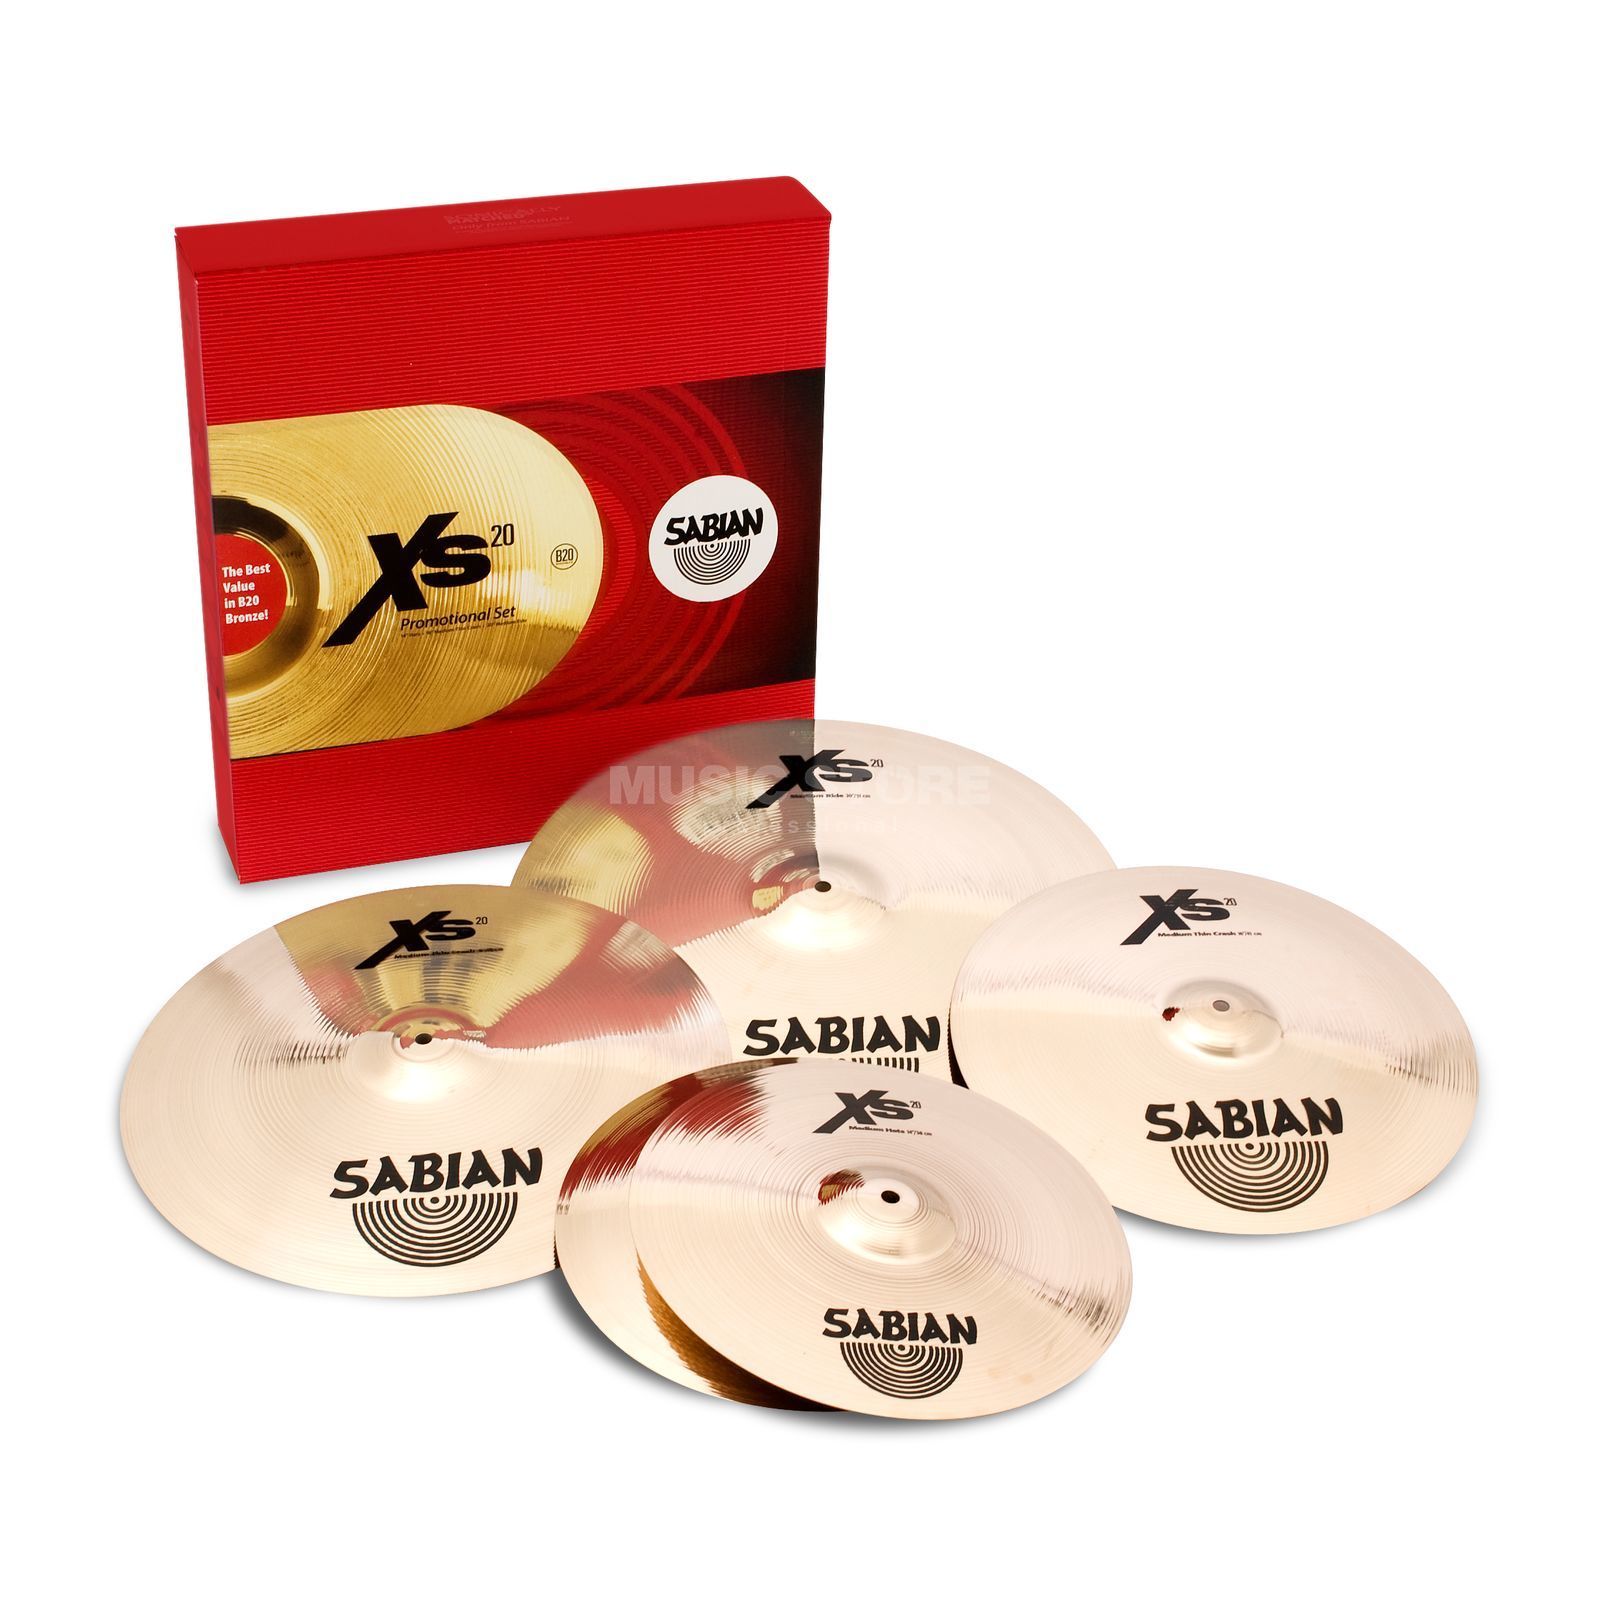 "Sabian XS20 Promotional Cymbal Set, 14""HH, 16""CR, 20""R + 18""CR Product Image"